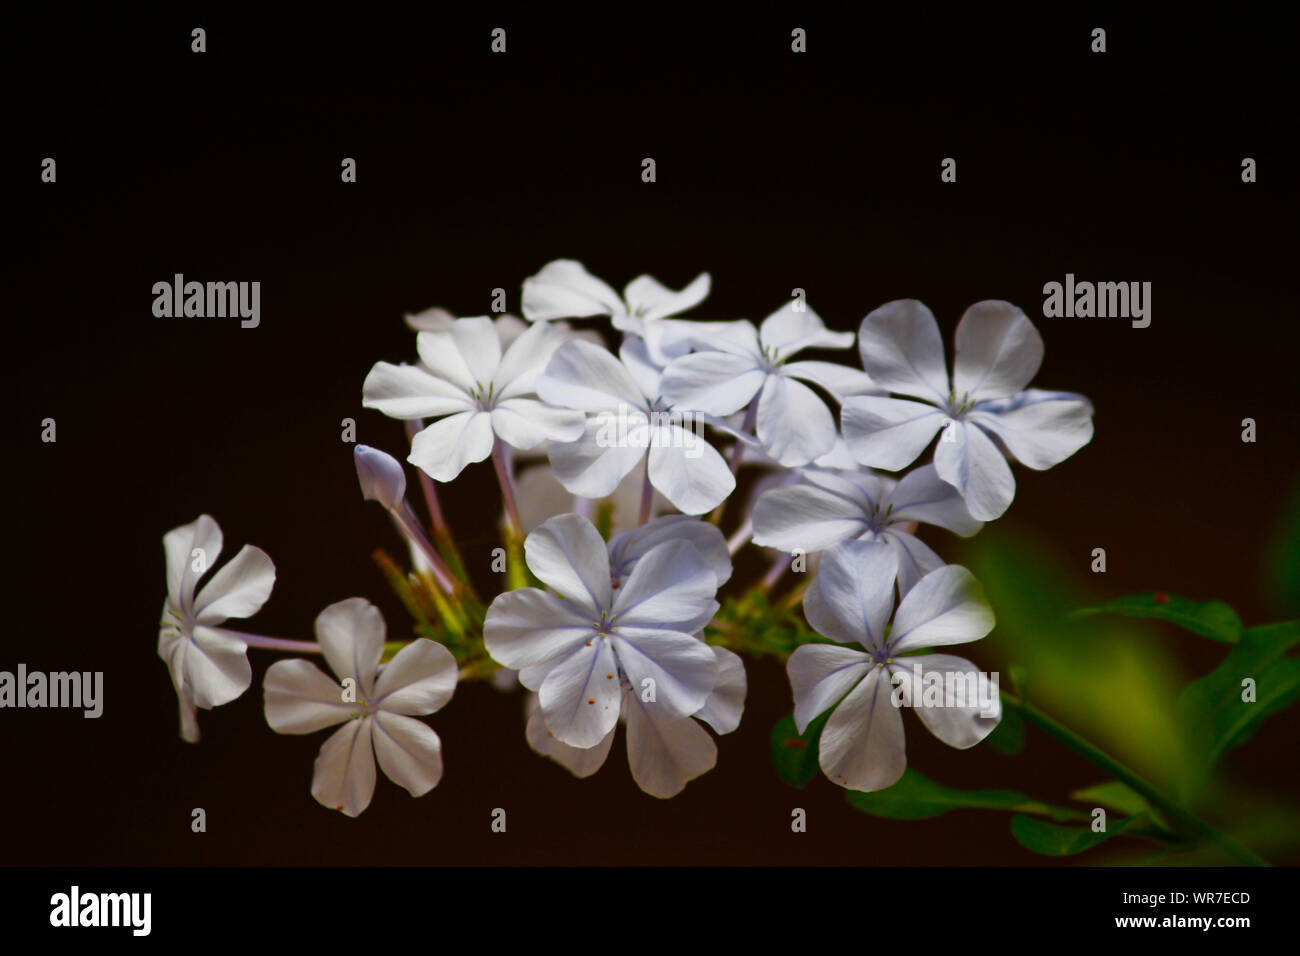 THE MILKY WHIITE FLOWERS Stock Photo